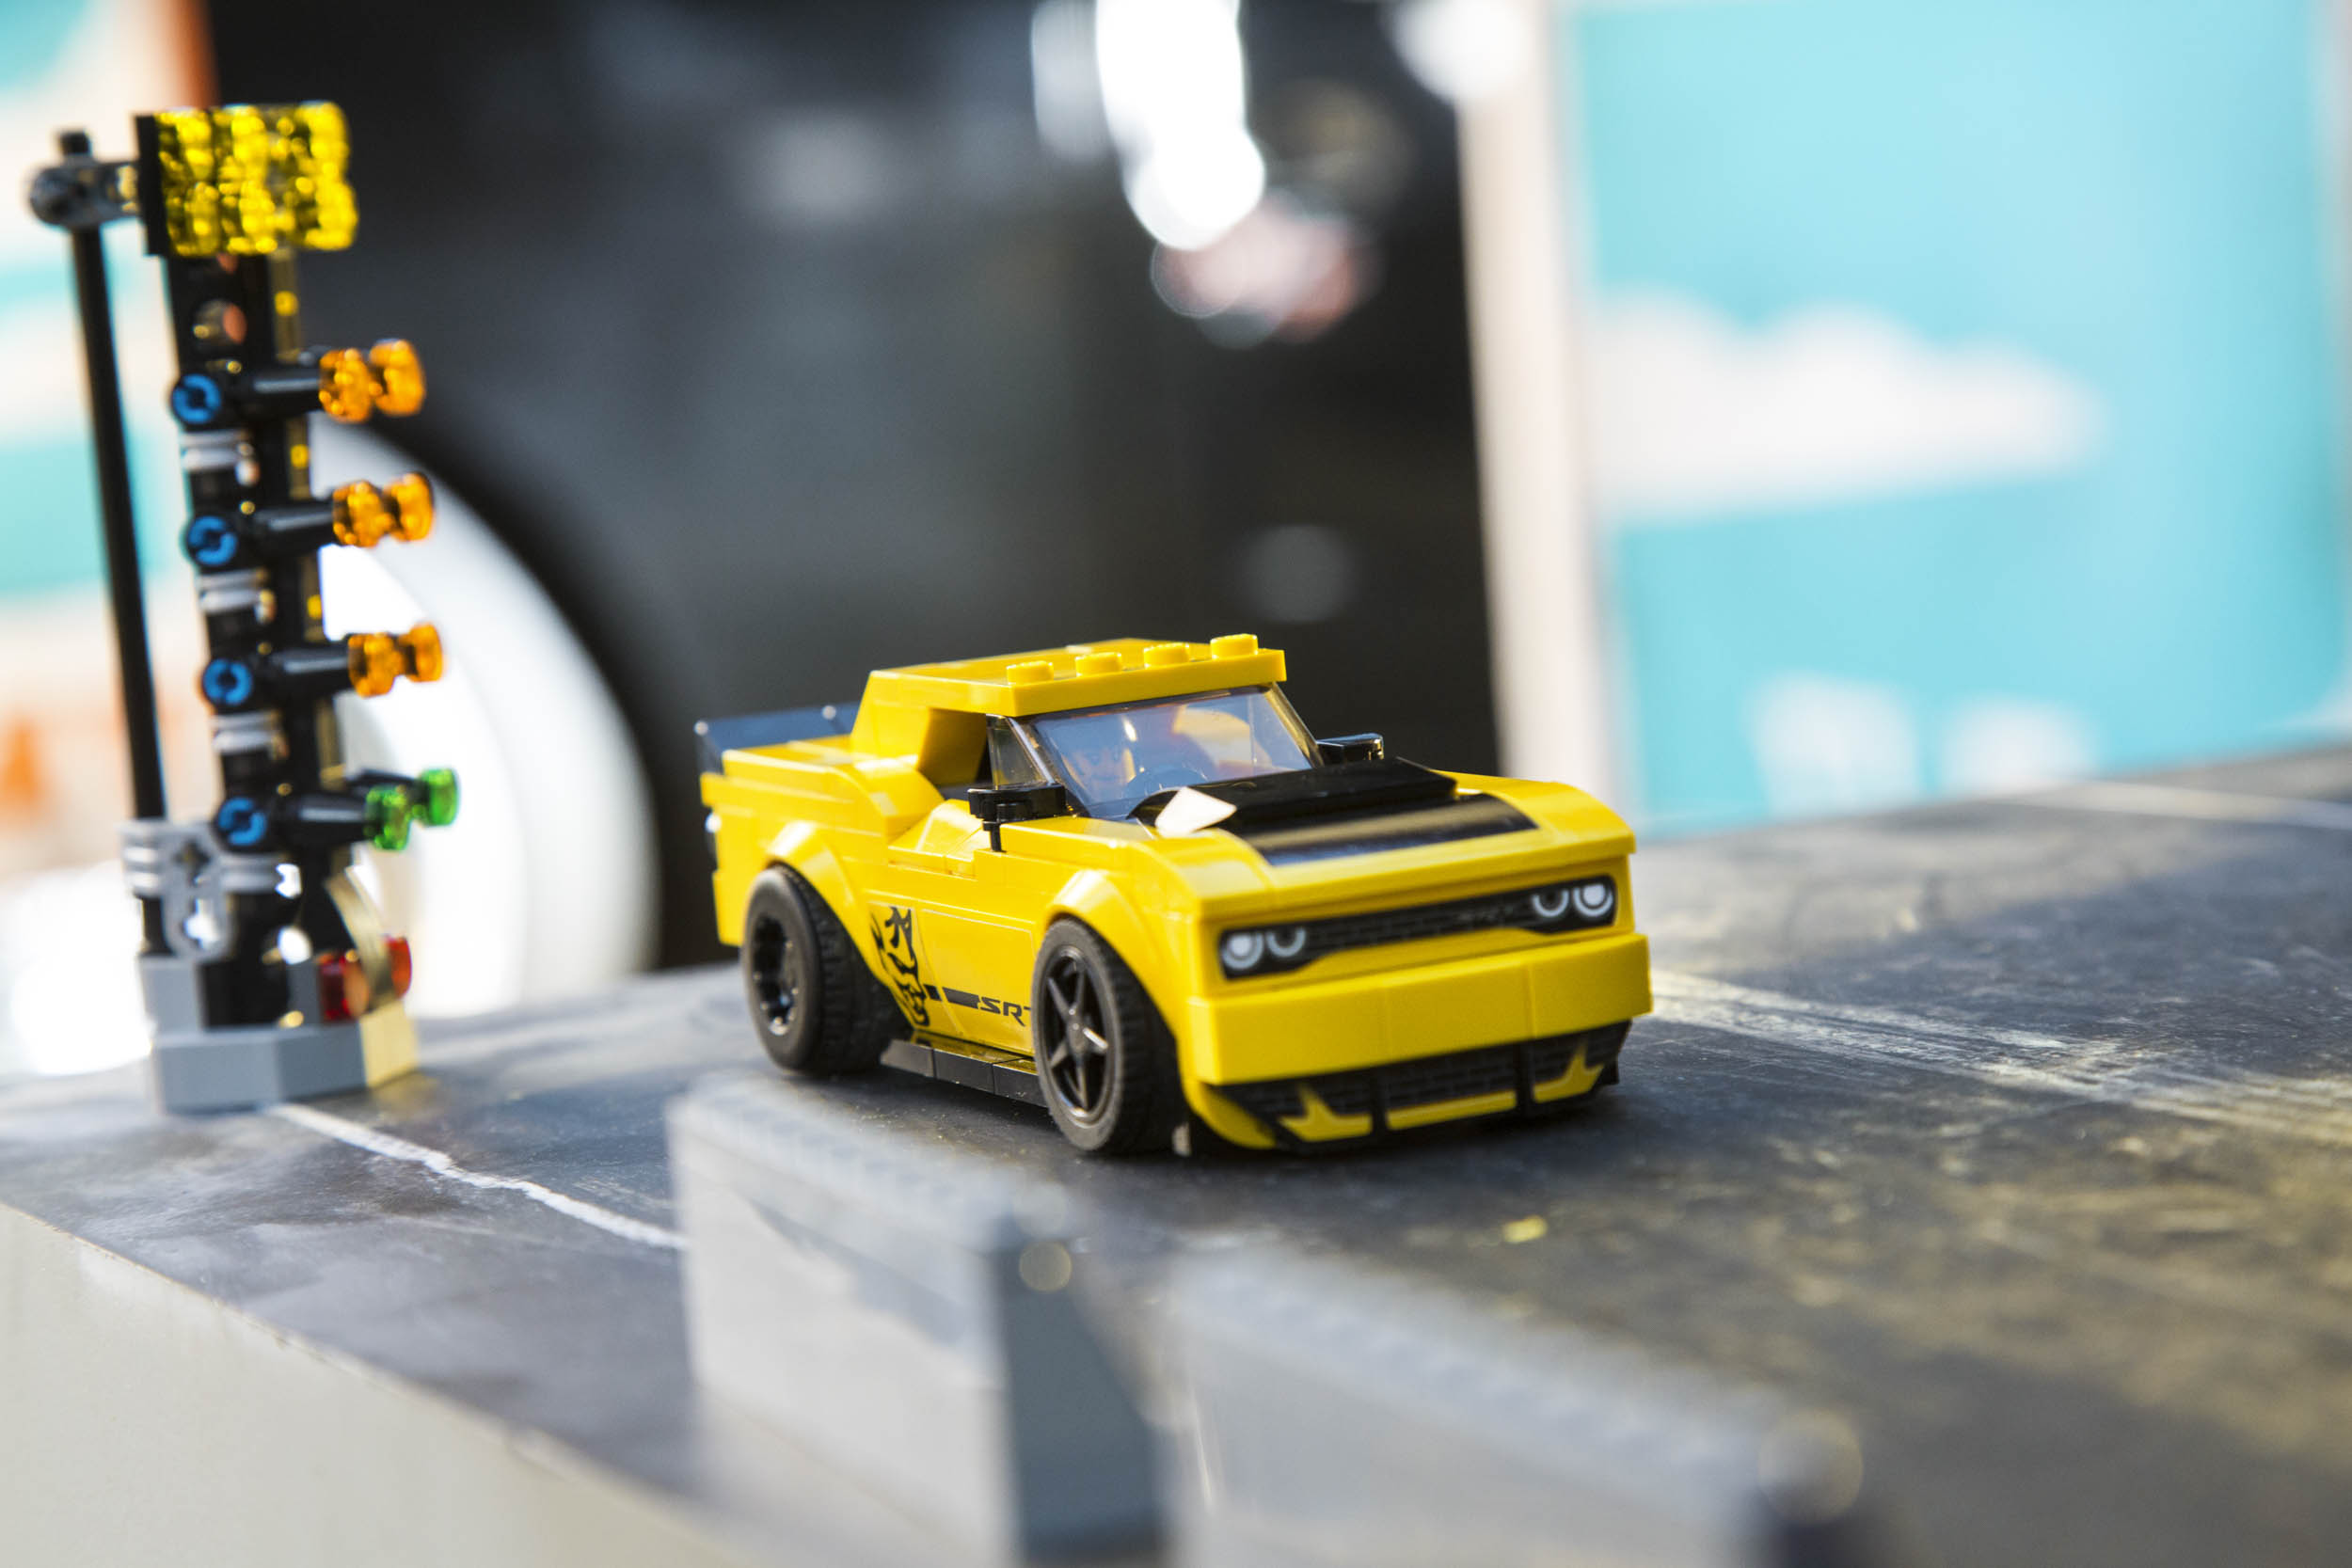 LEGO wasn't playing around when it created its own Dodge SRT Demon thumbnail